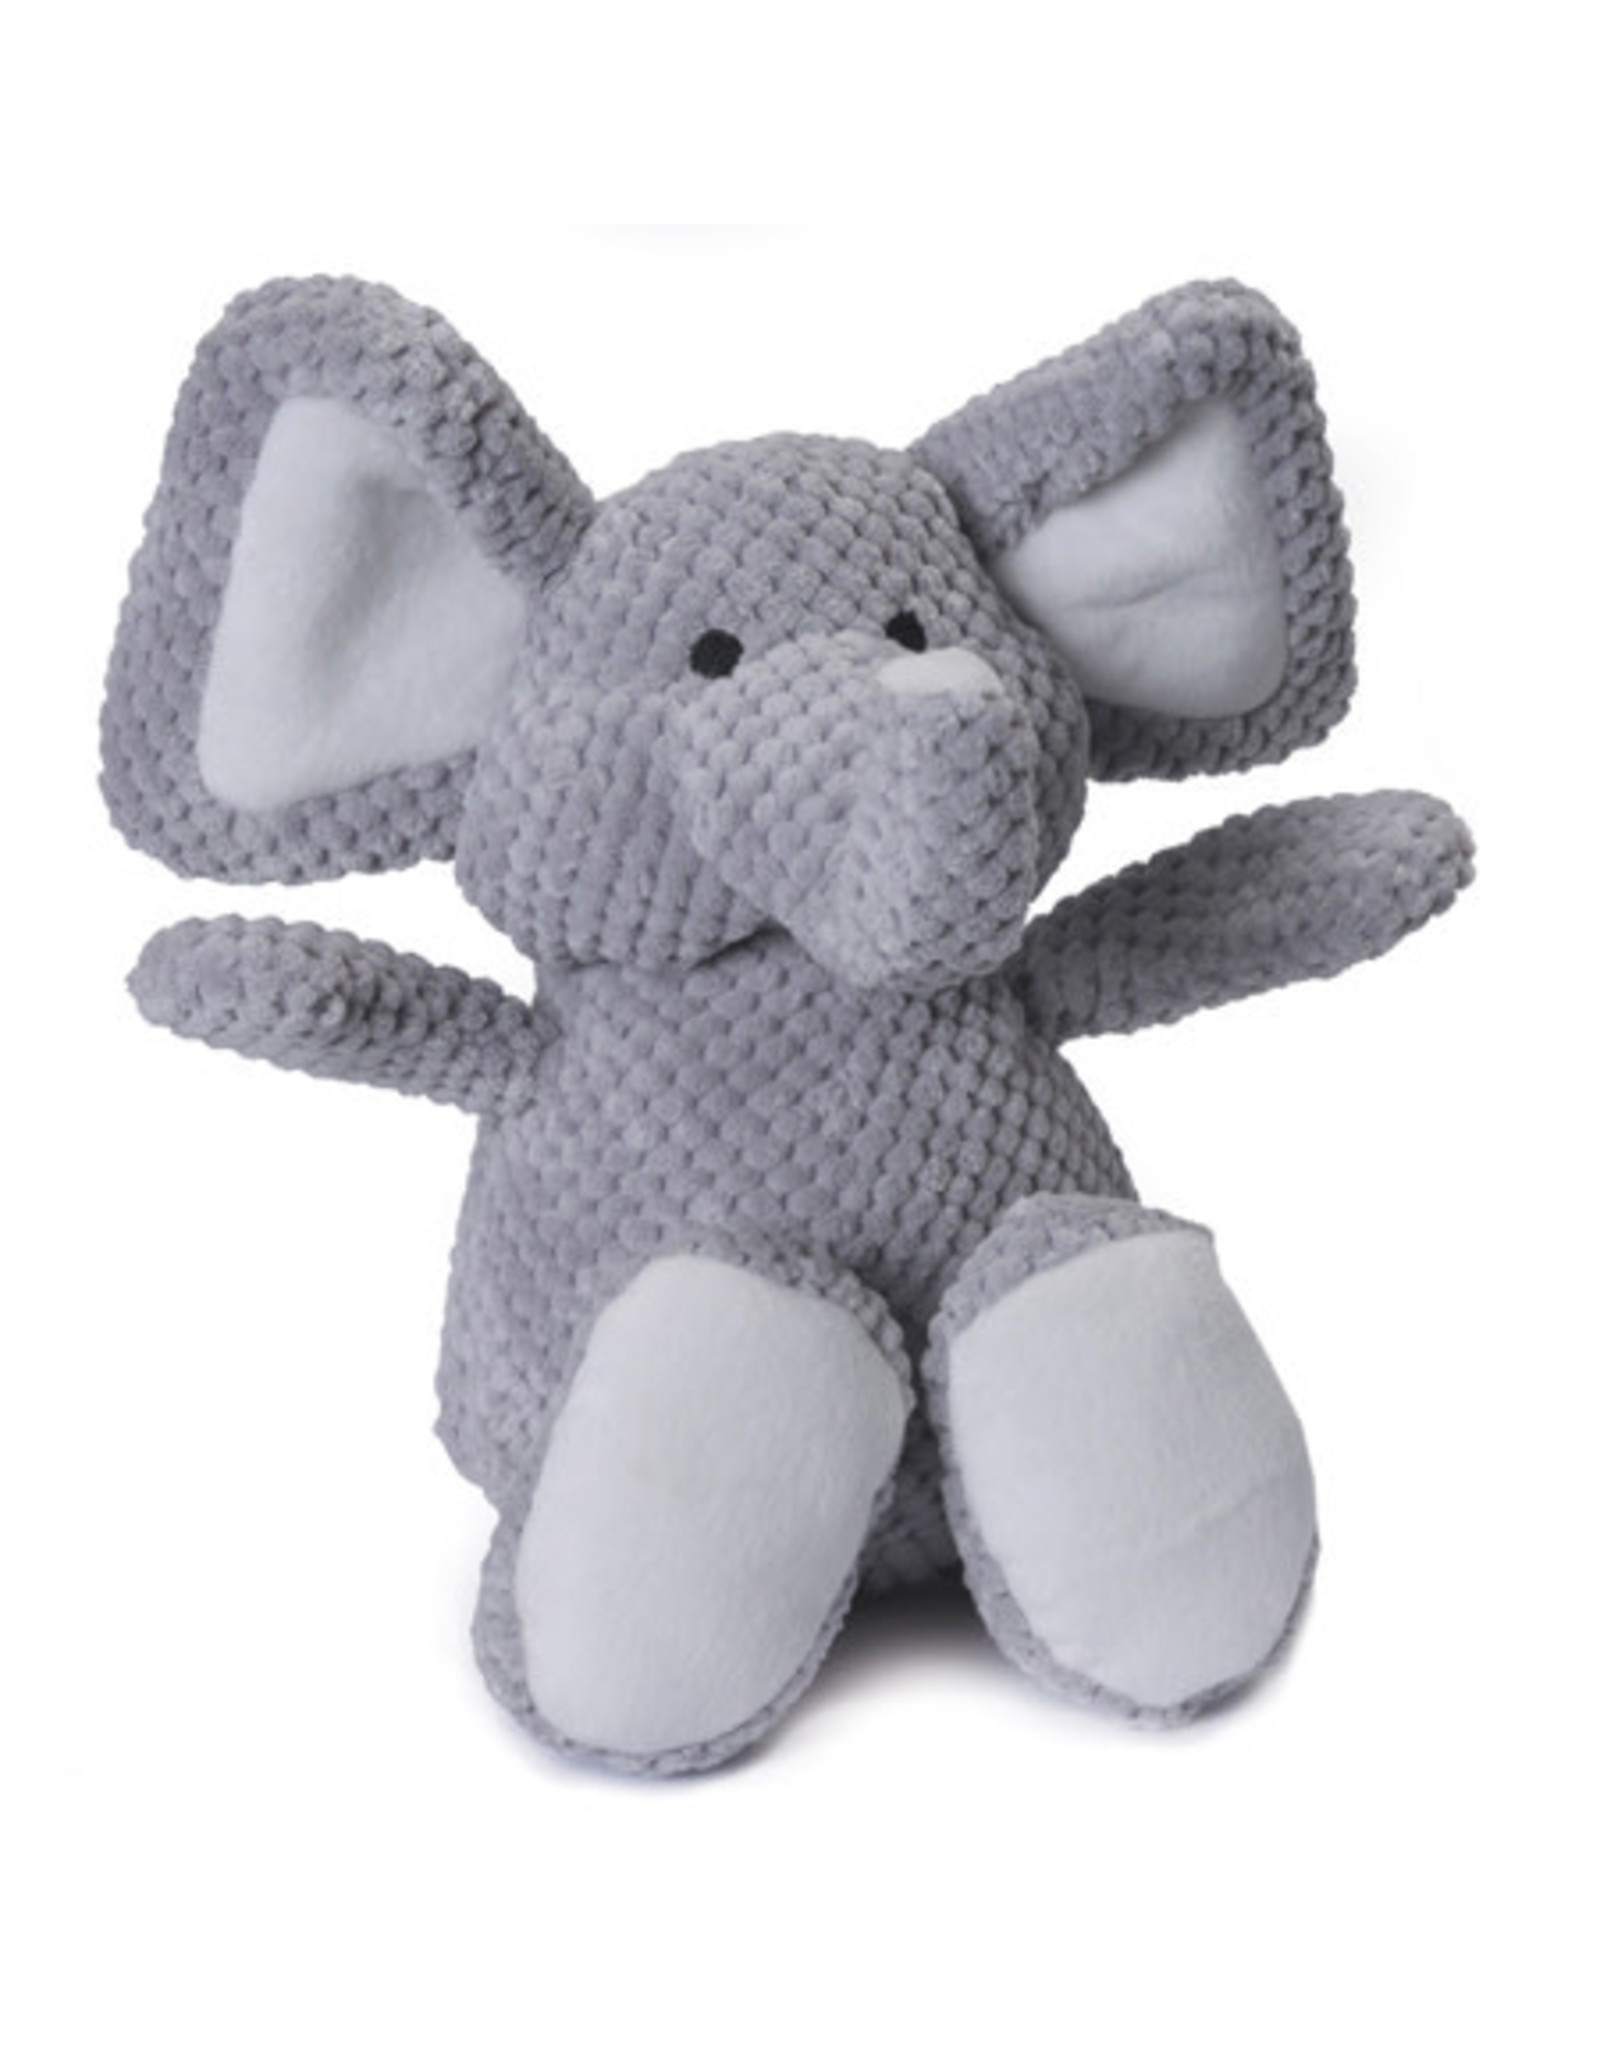 GoDog GODOG Checkers Elephant S